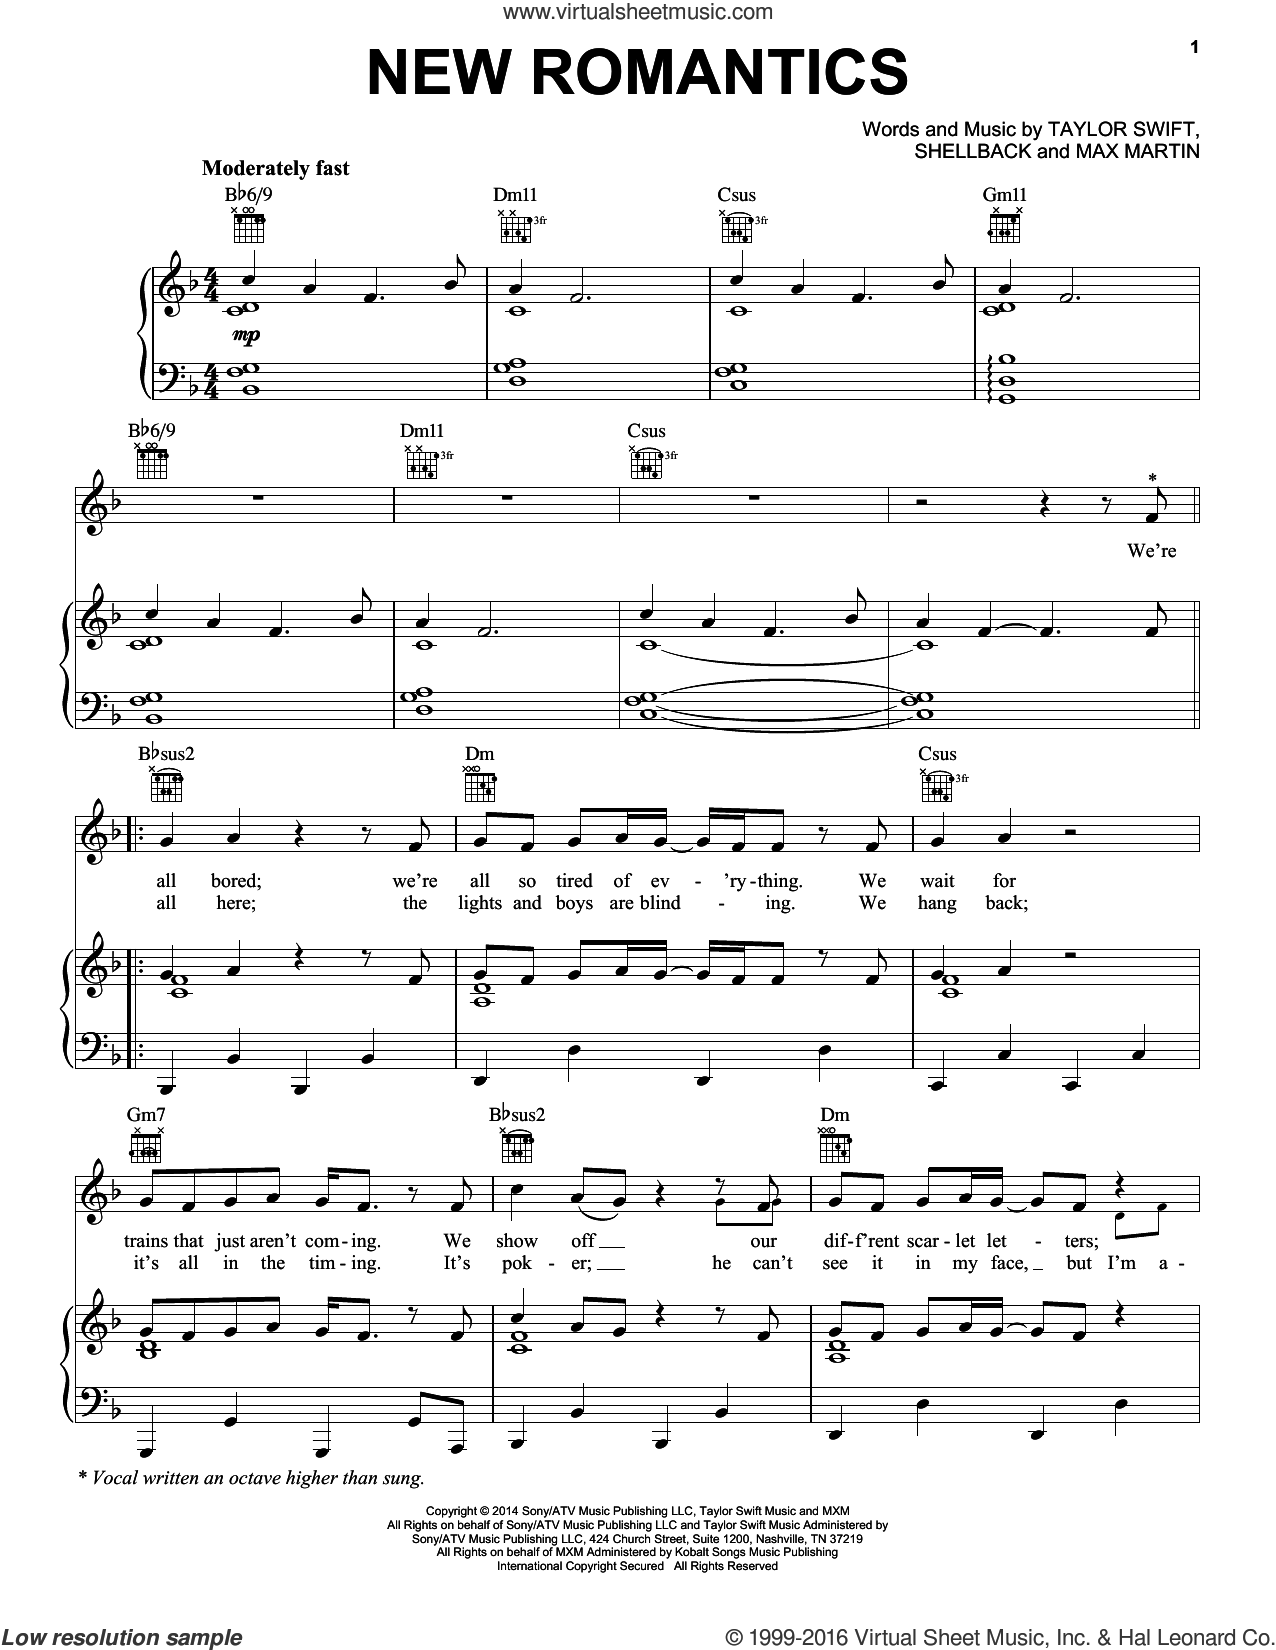 New Romantics sheet music for voice, piano or guitar by Shellback, Max Martin and Taylor Swift. Score Image Preview.